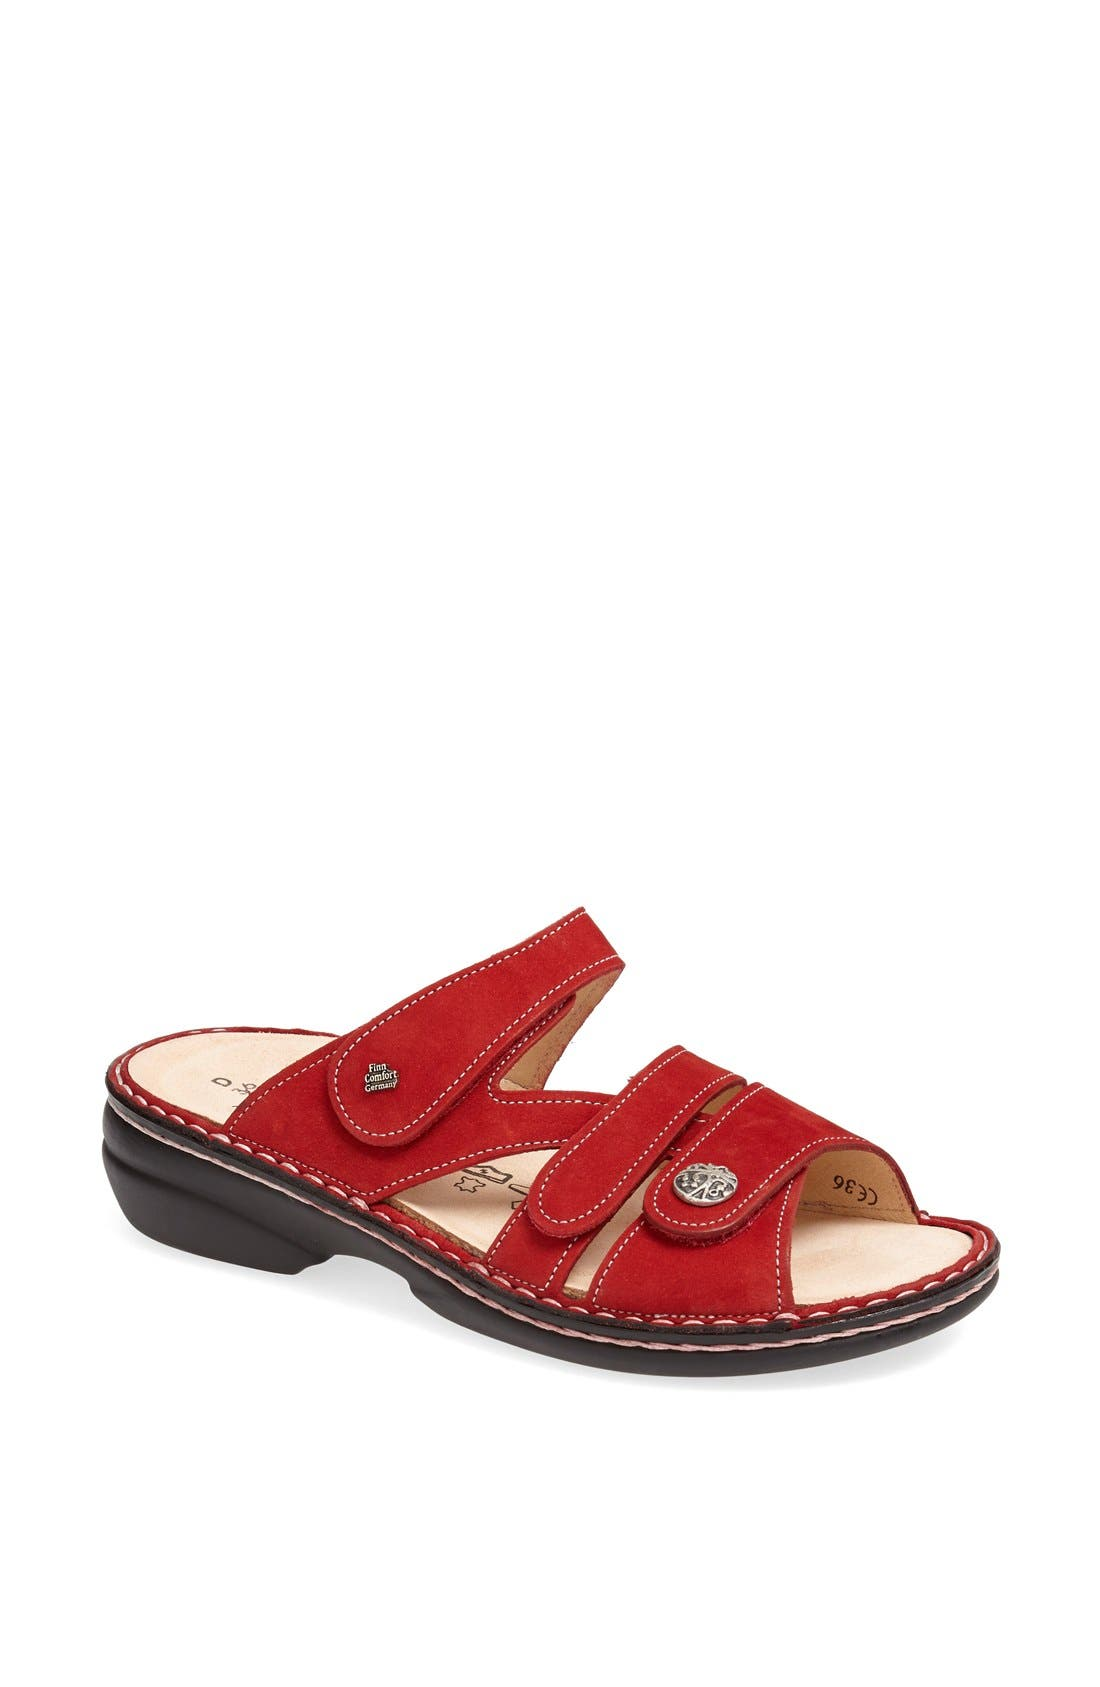 Alternate Image 1 Selected - Finn Comfort 'Ventura' Sandal